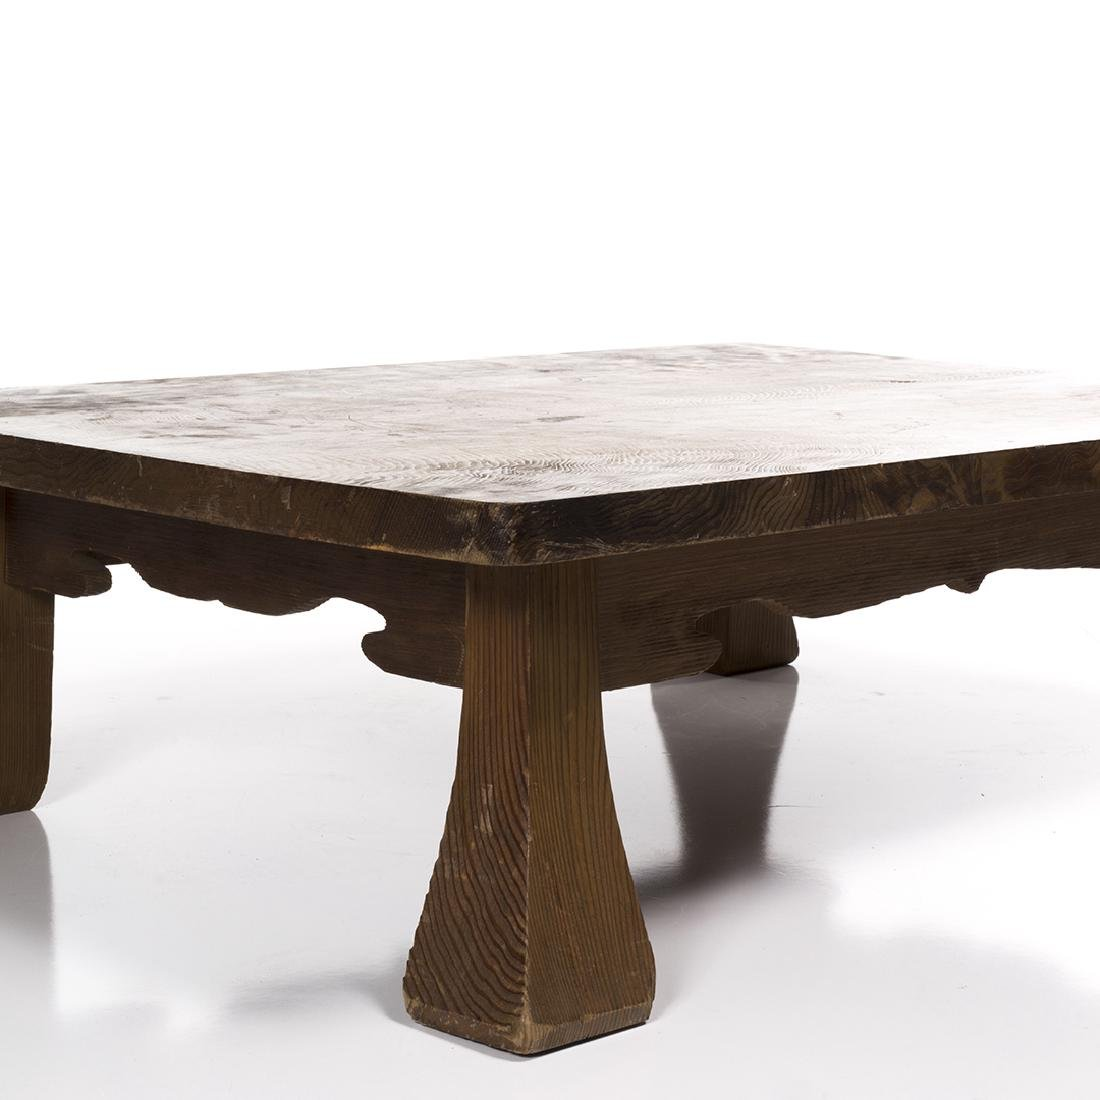 Low Craftsman Style Table - 3